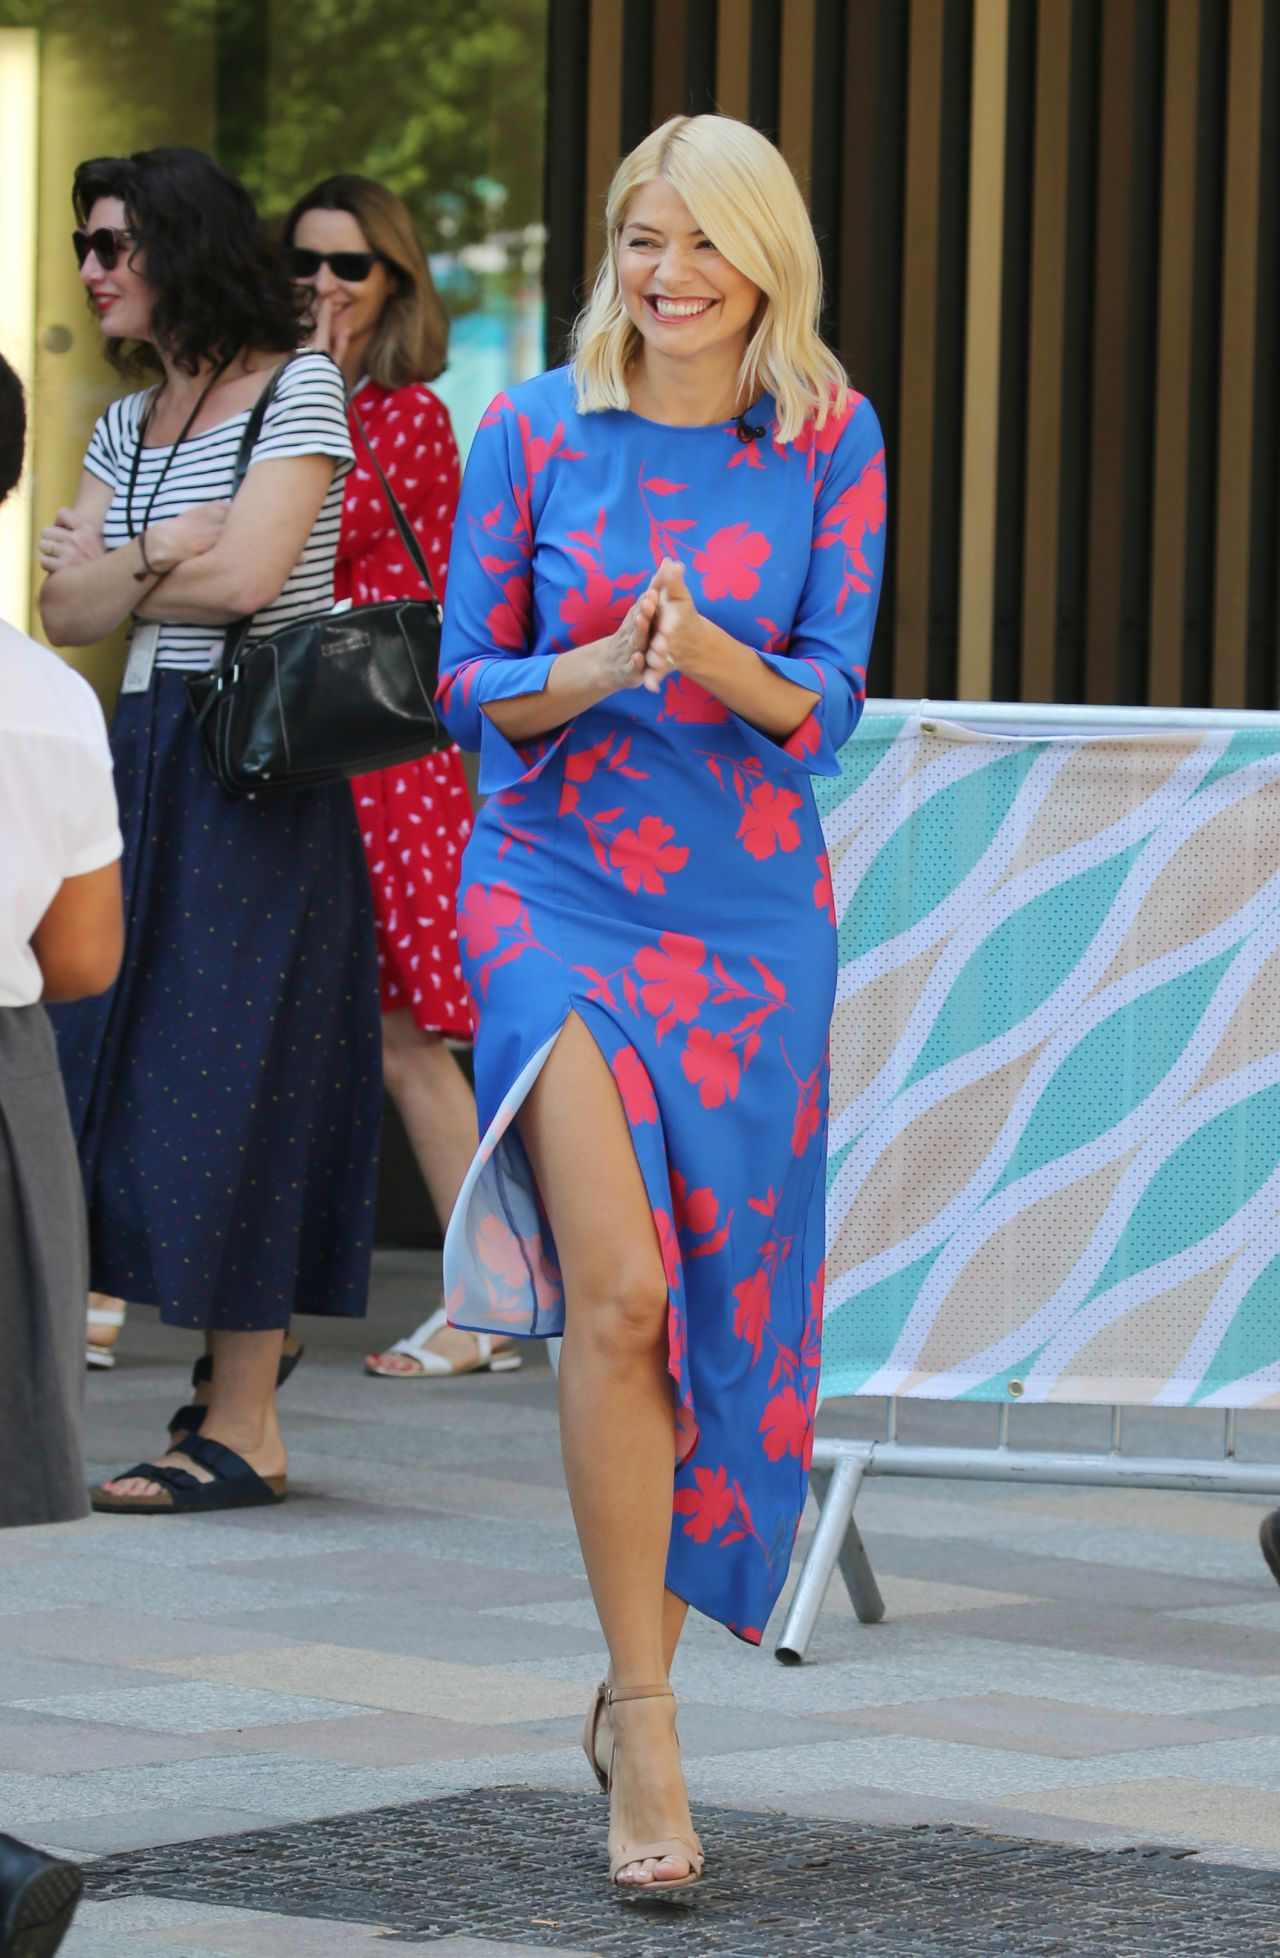 a8fc9707408 Holly Willoughby - Filming Outside ITV Studios in London 05 08 2018